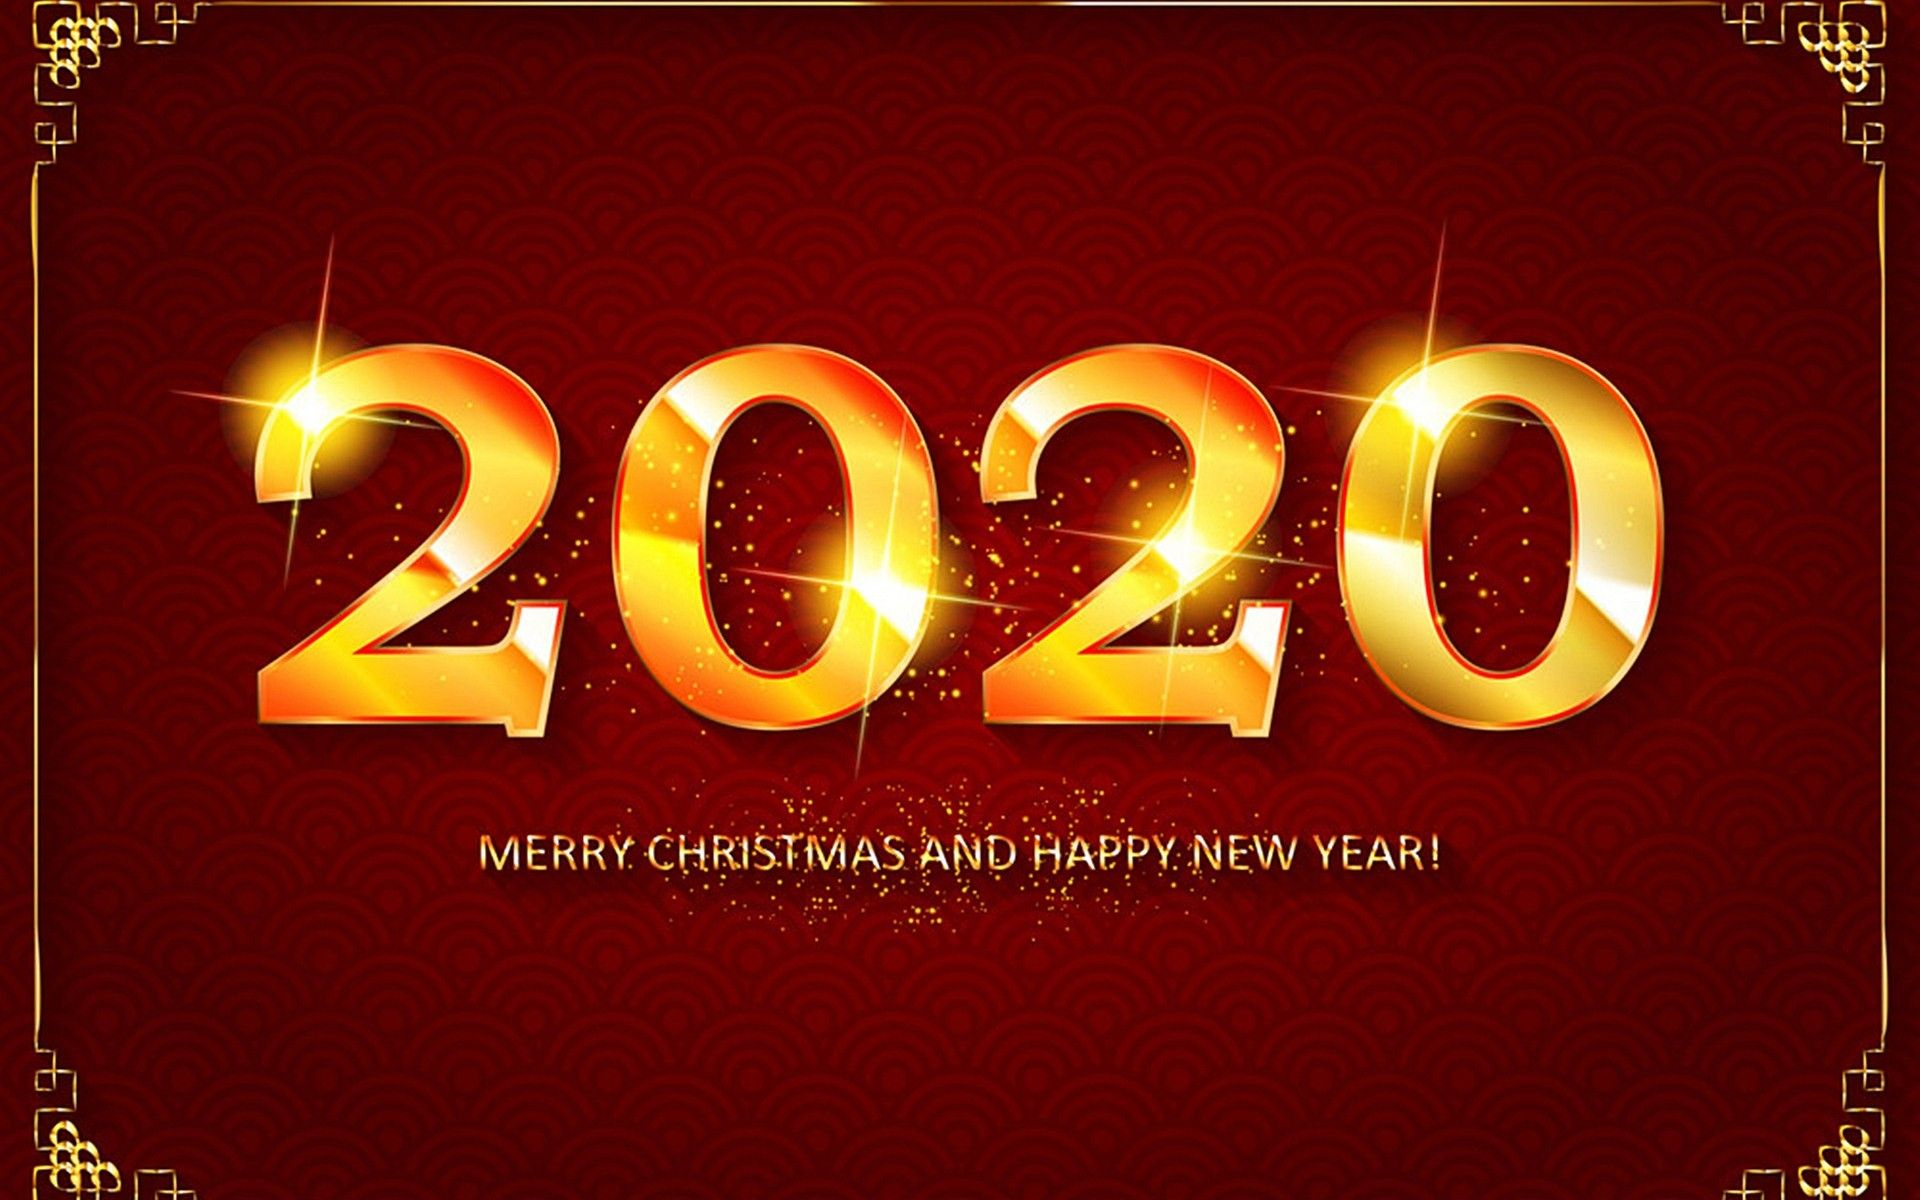 Happy New Year 2020 Wallpapers Top Free Happy New Year